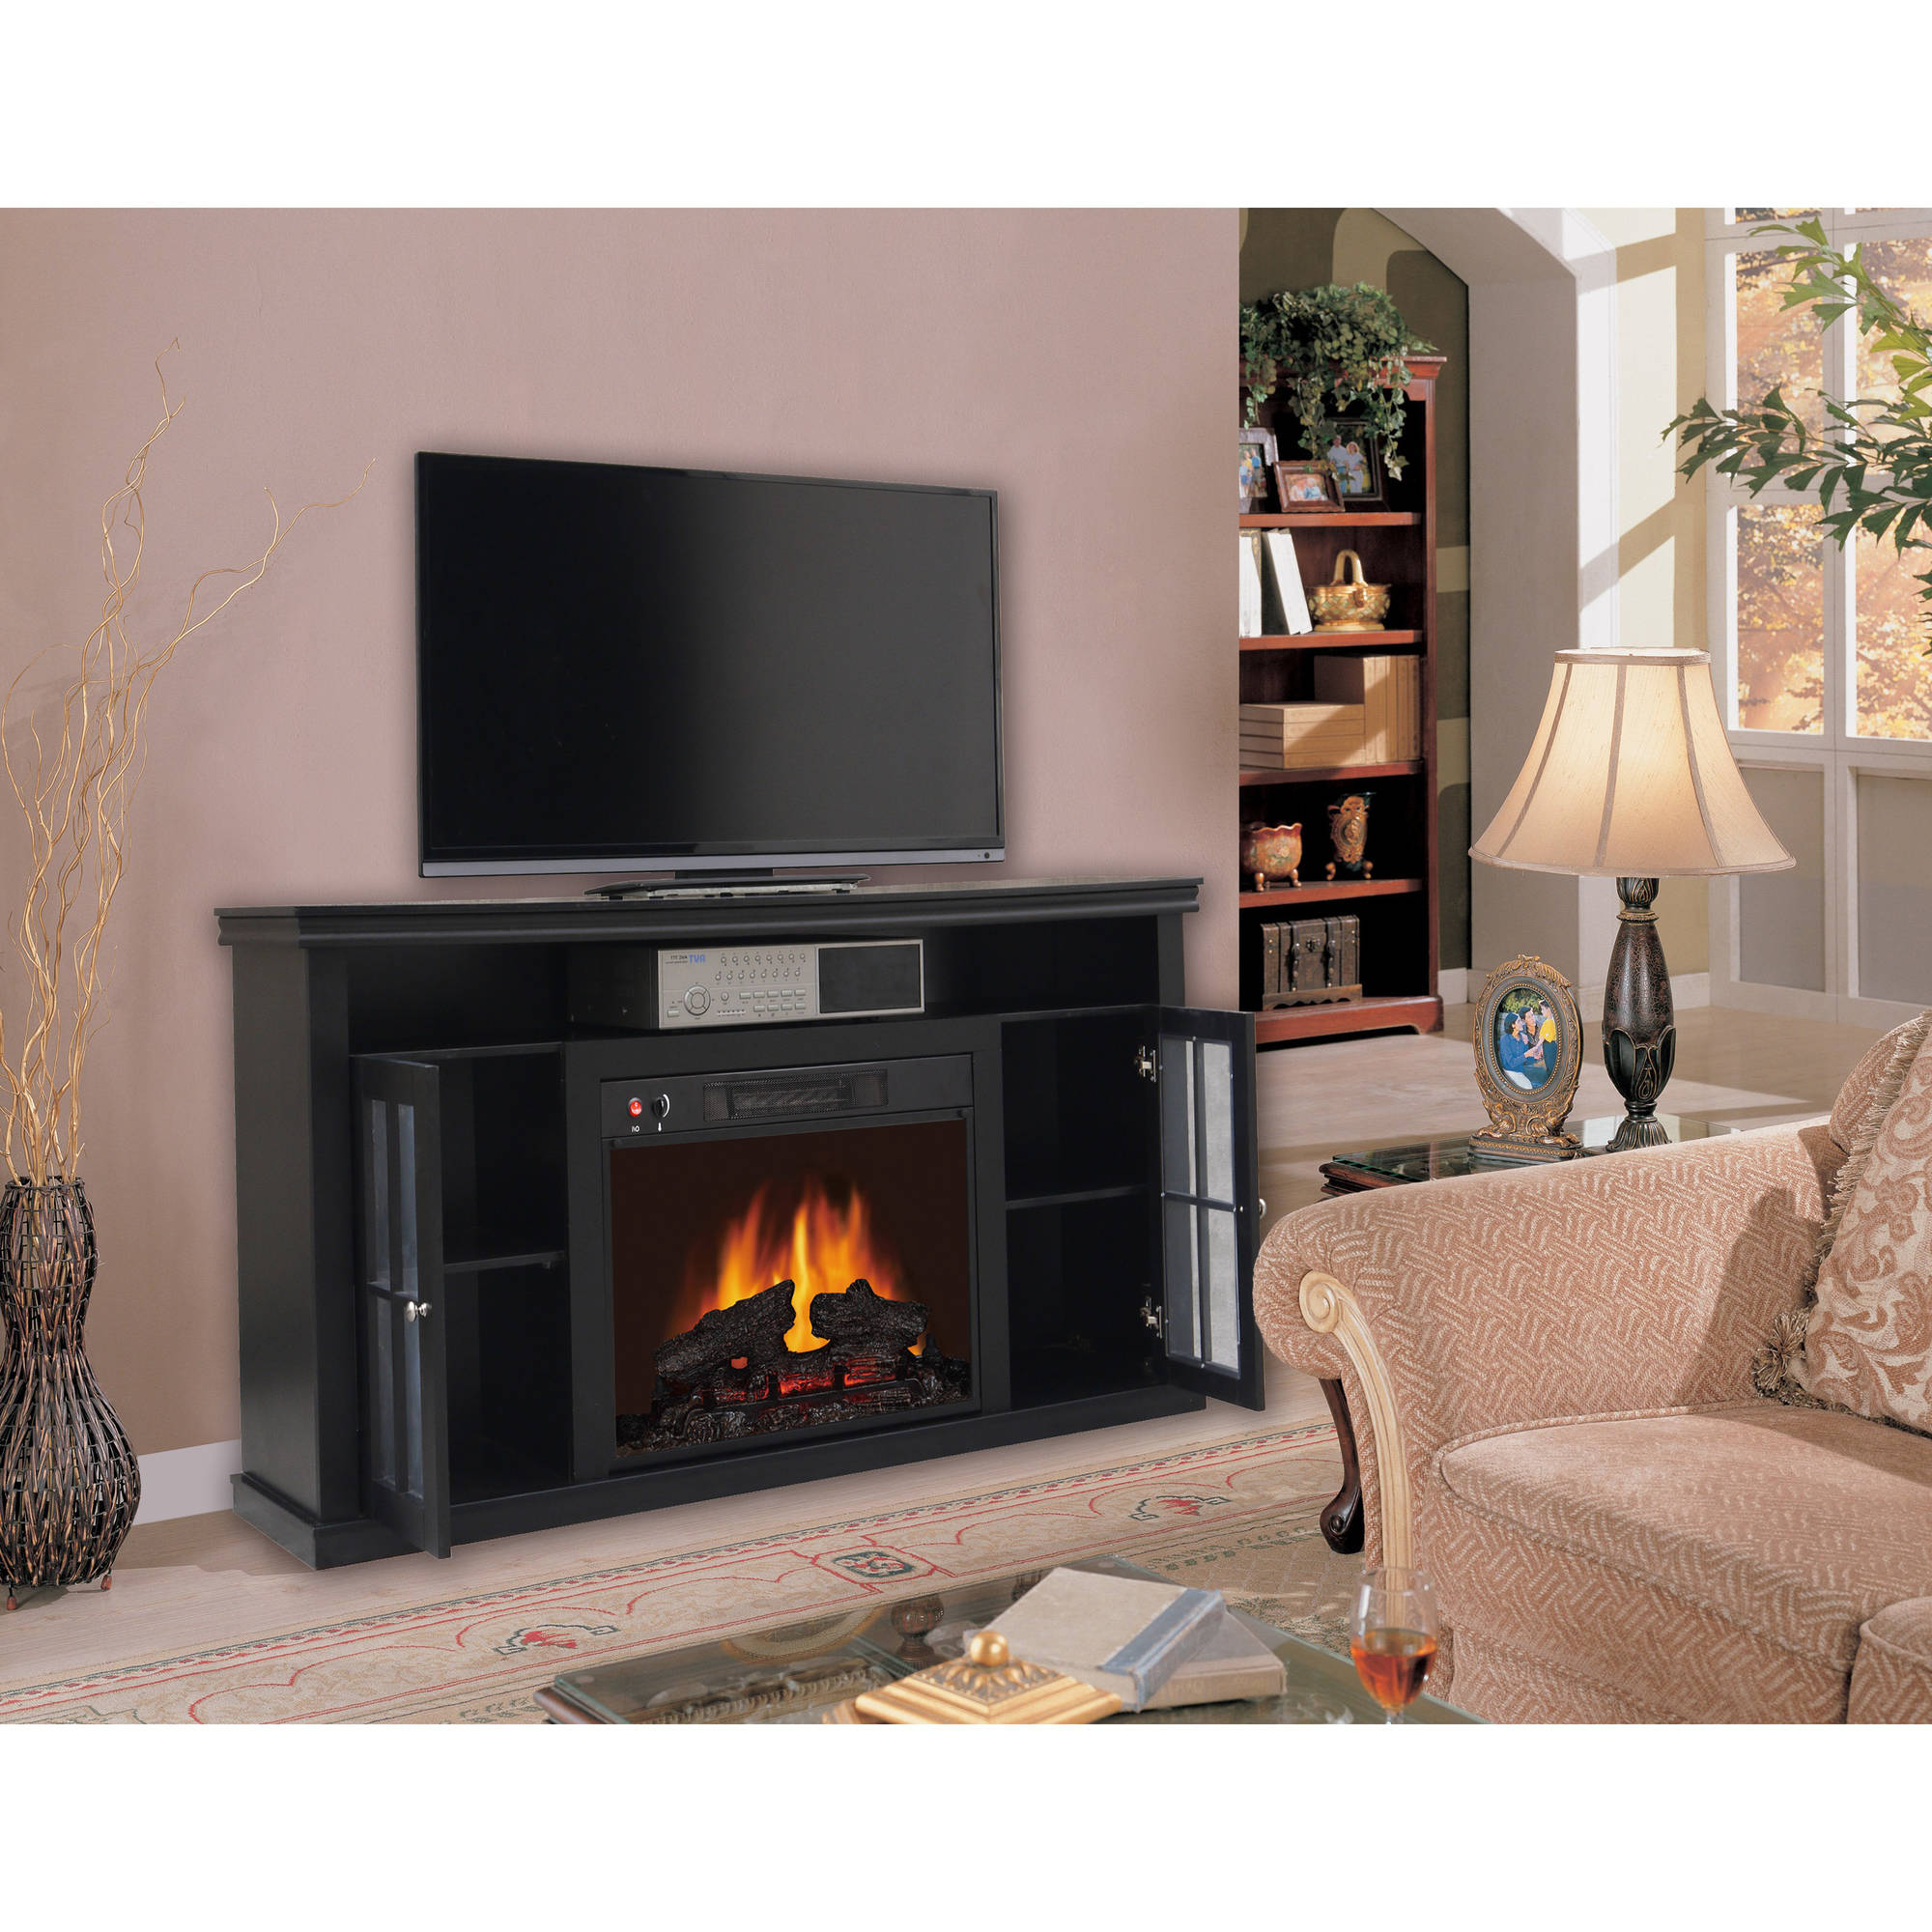 60`` Black Electric Fireplace Heater